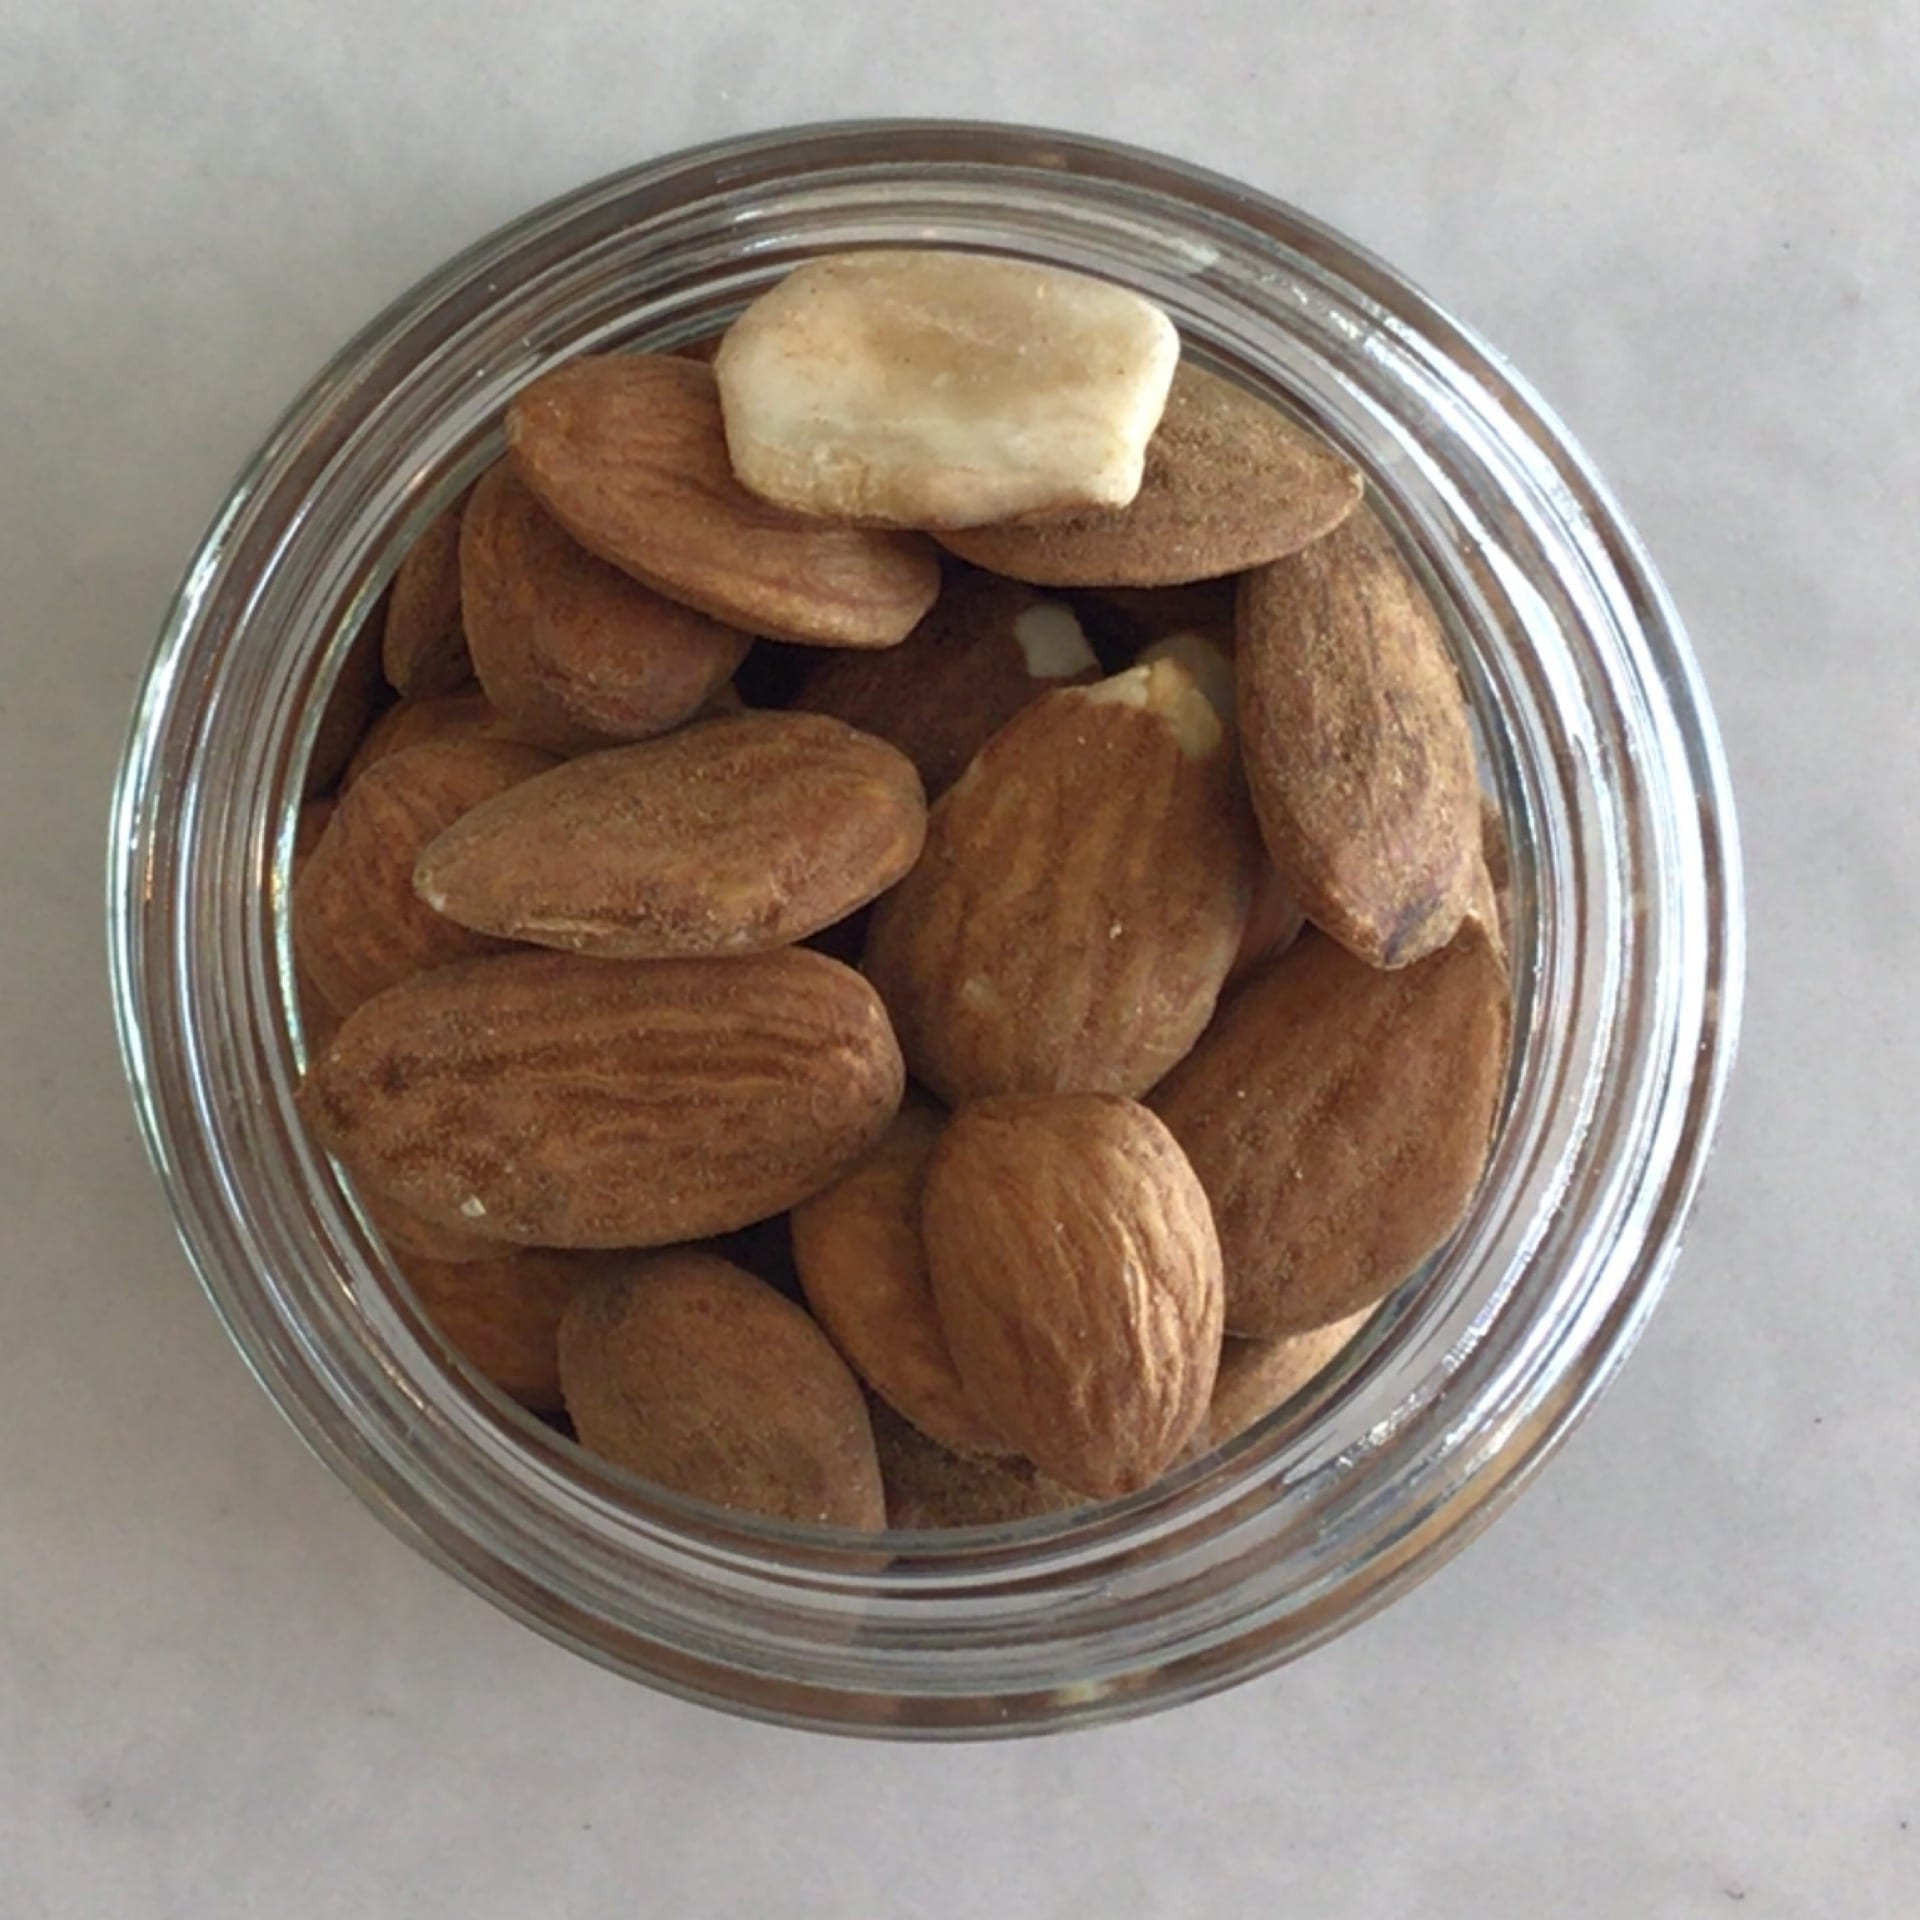 Whole Raw Almonds you can buy by the pound